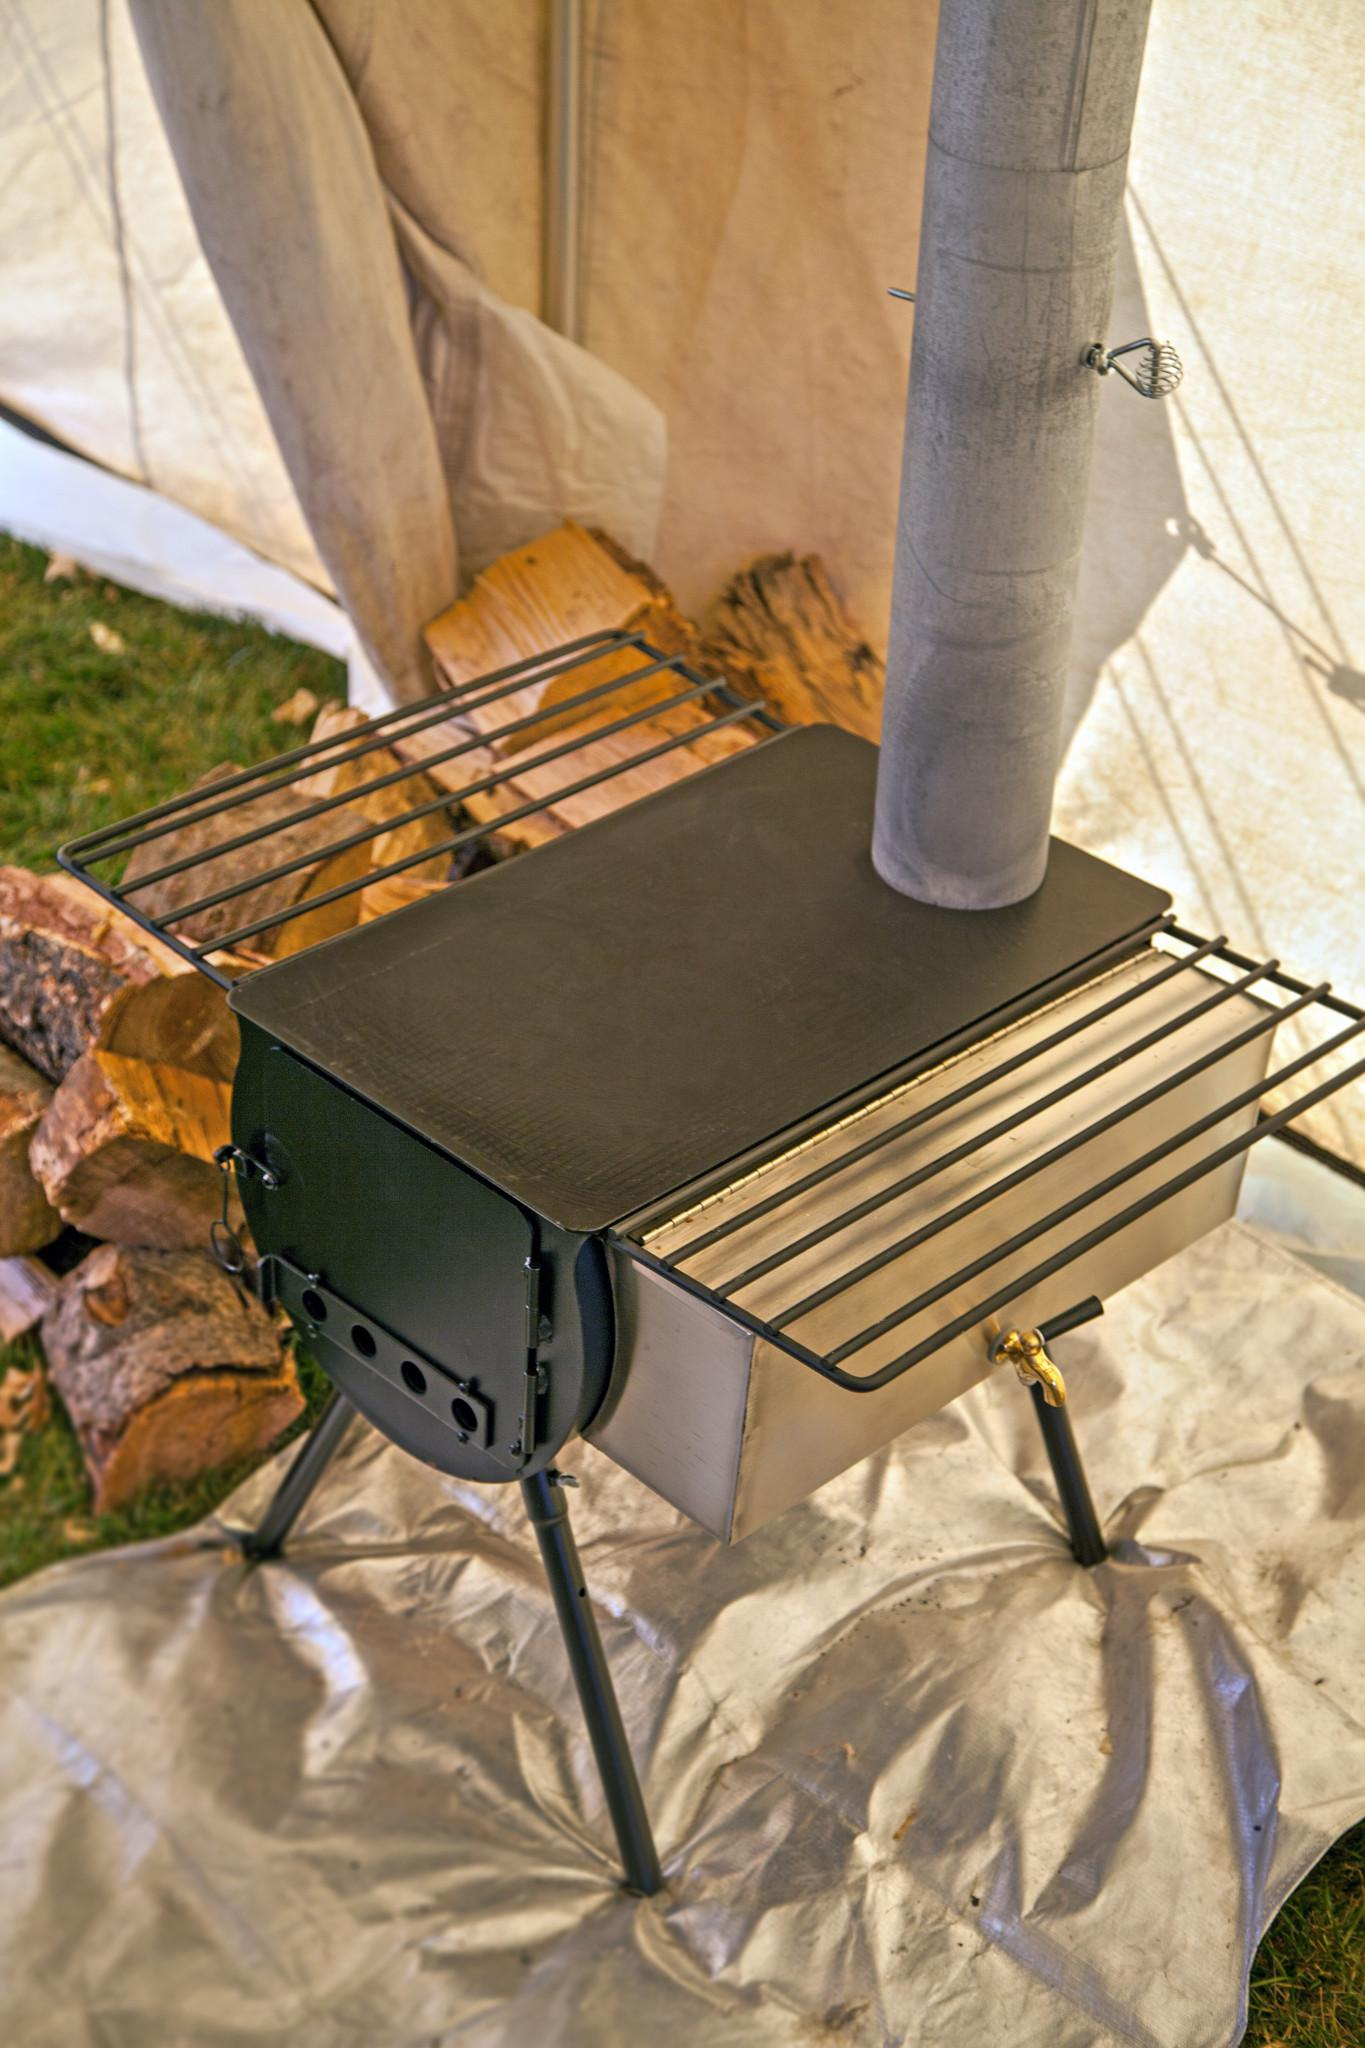 Camp Chef WT14 Cylinder Stove Hot Water Tank